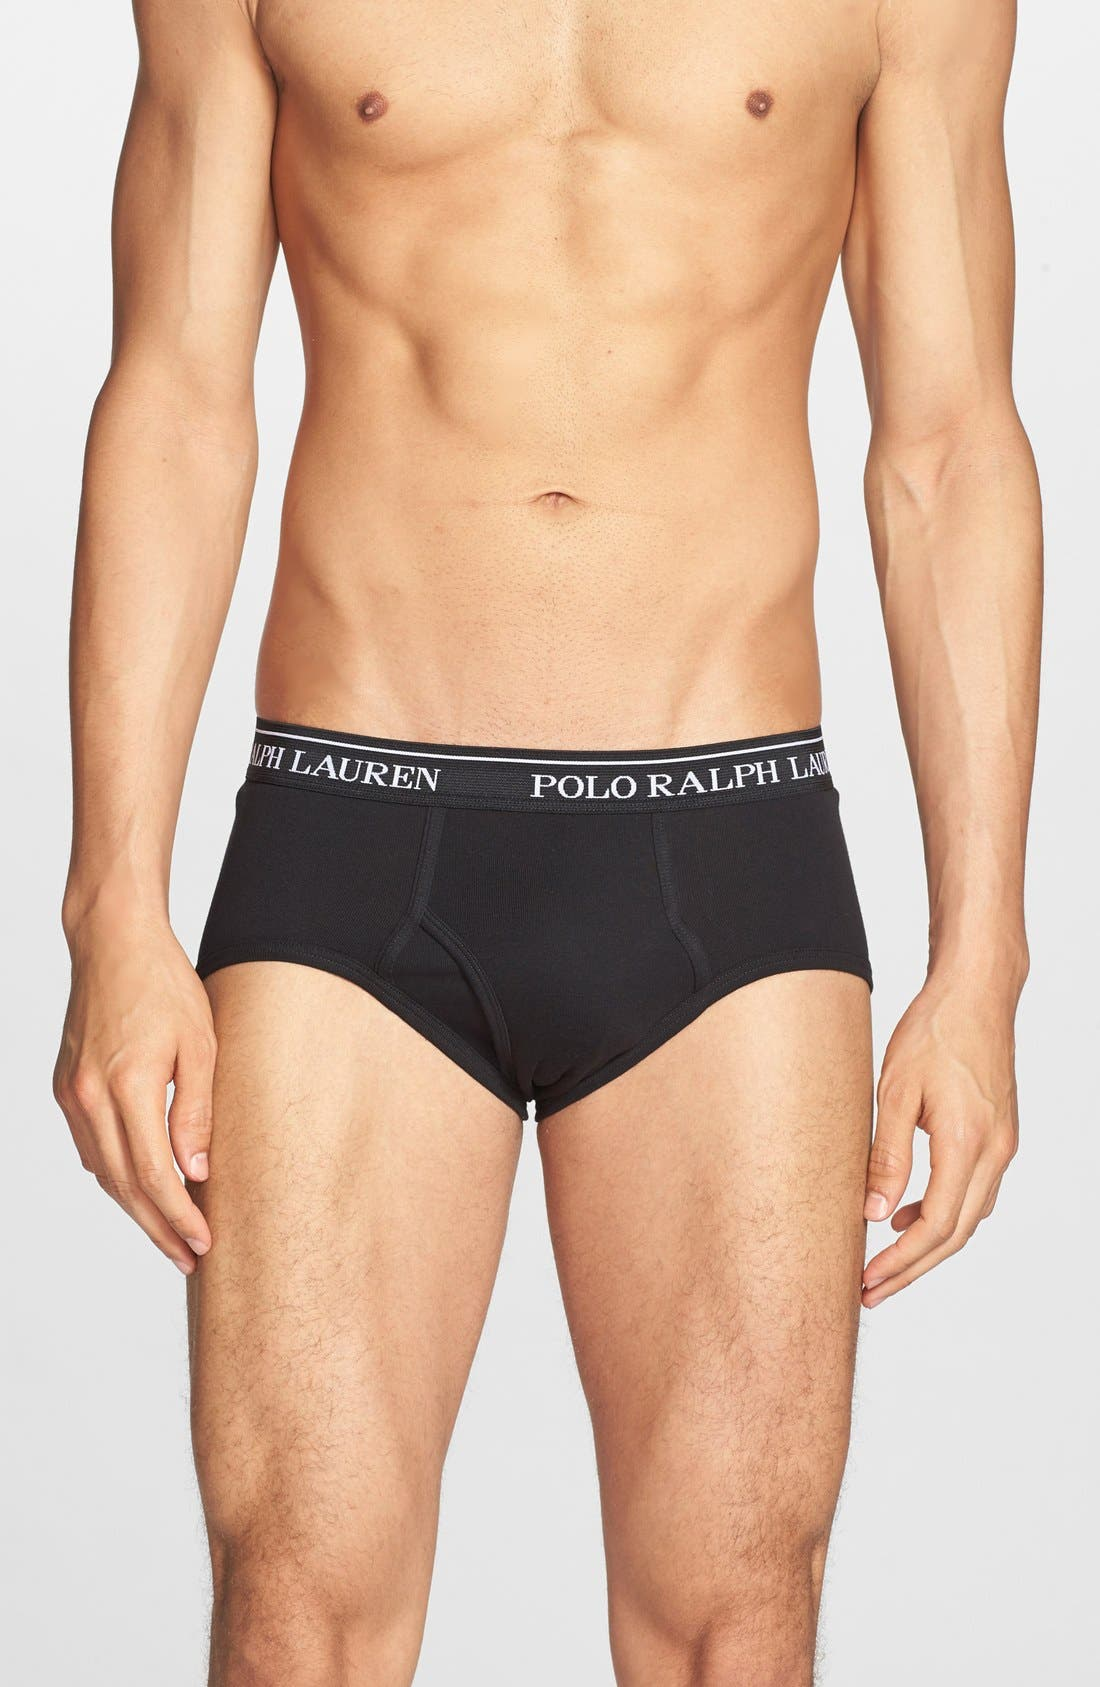 Polo Ralph Lauren 4-Pack Low Rise Briefs